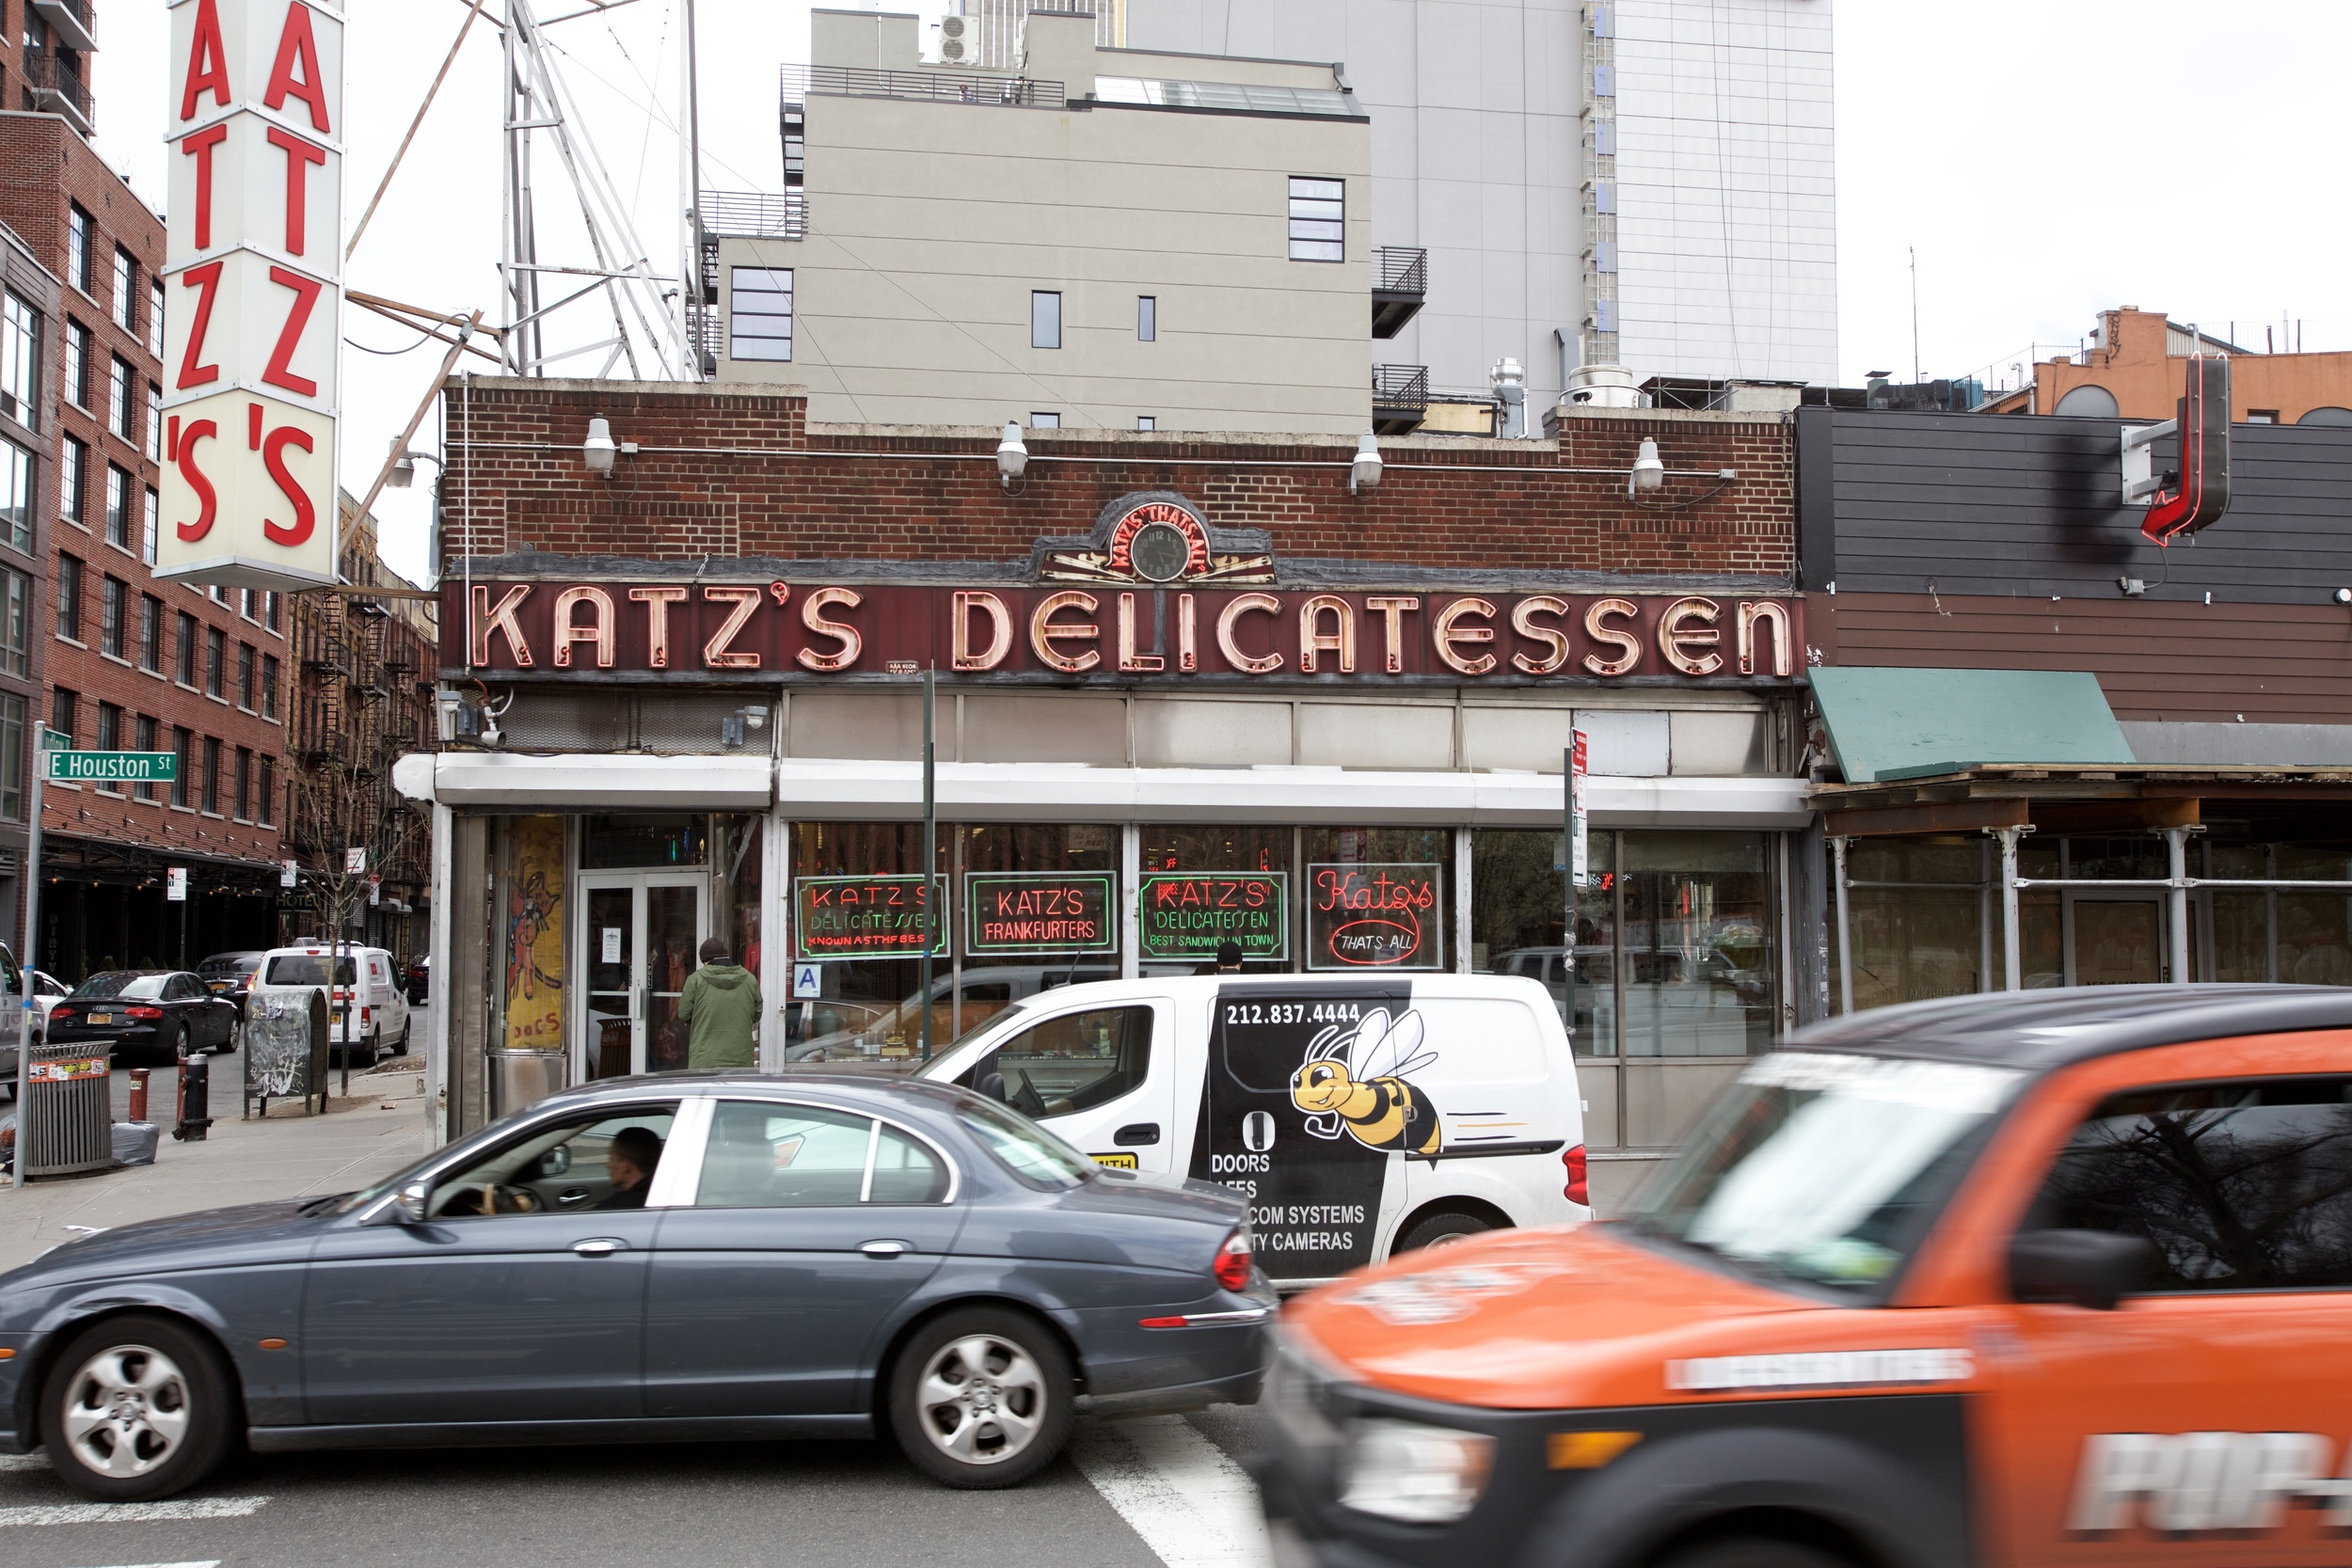 KATZ'S DELICATESSEN AT THE CORNER OF HOUSTON AND LUDLOW STREETS